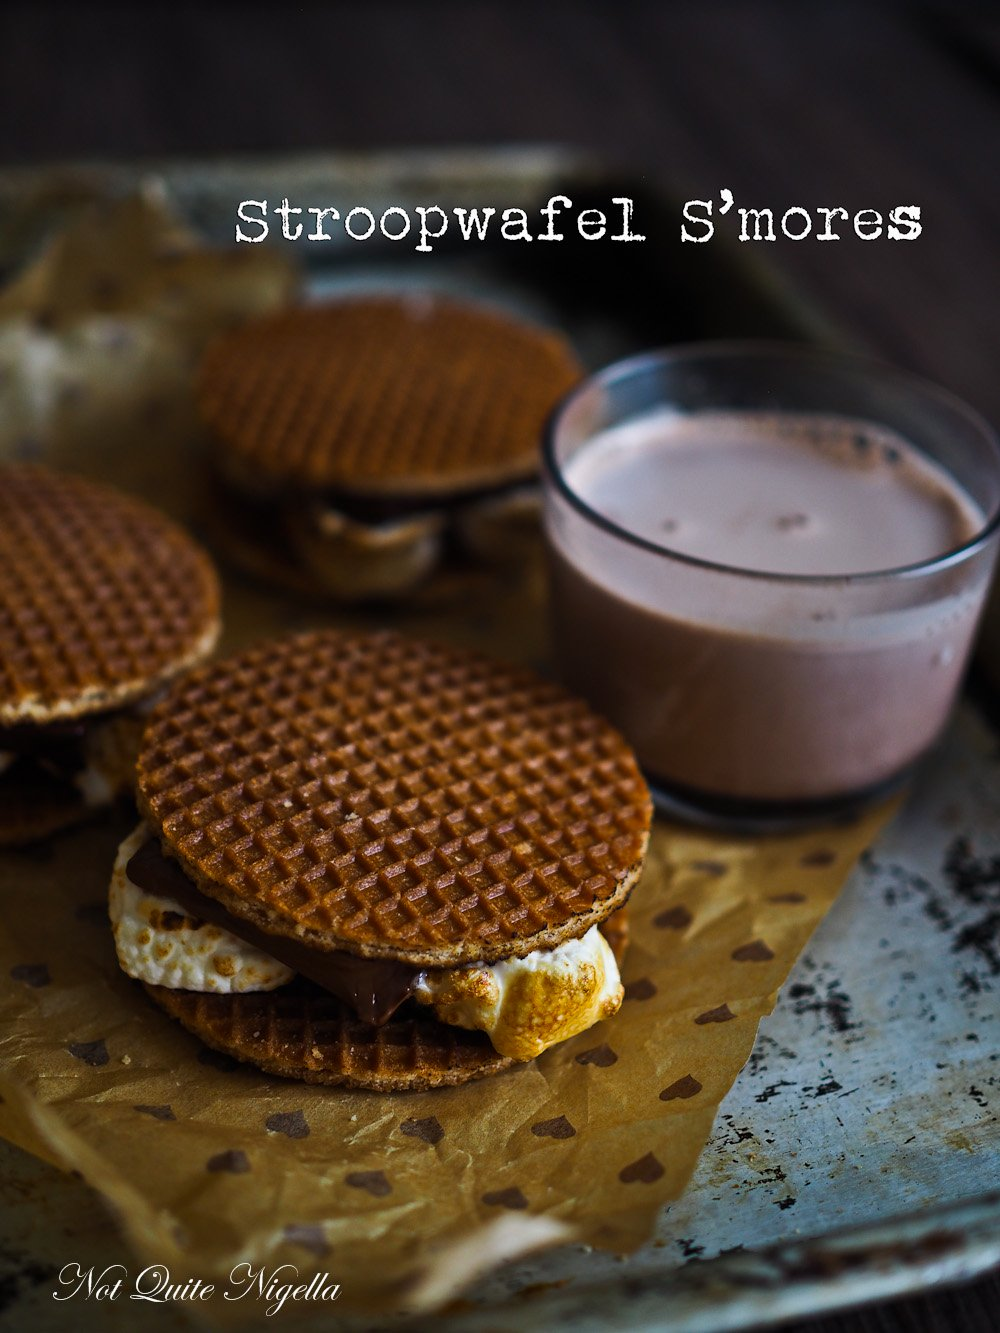 Best Waffles Amsterdam Stroopwafel Smores Recipes @ Not Quite Nigella